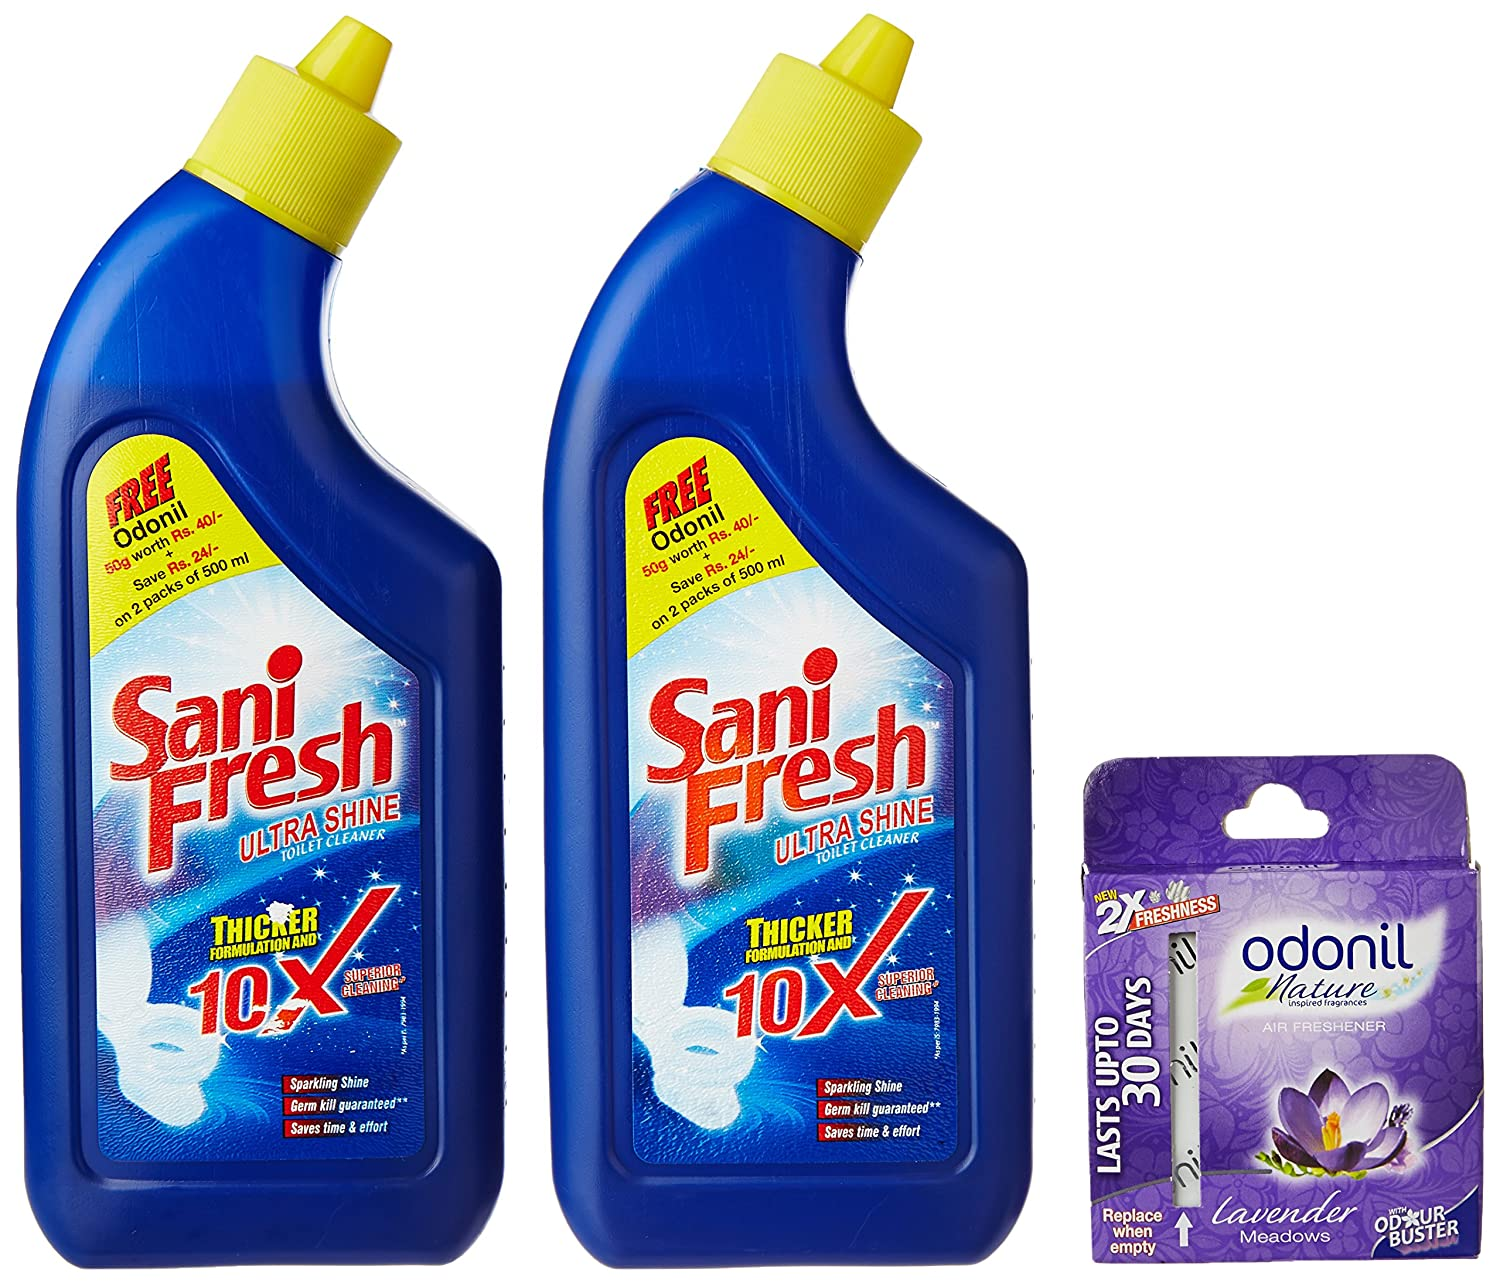 Free Odonil Air Freshner with Sanifresh Shine